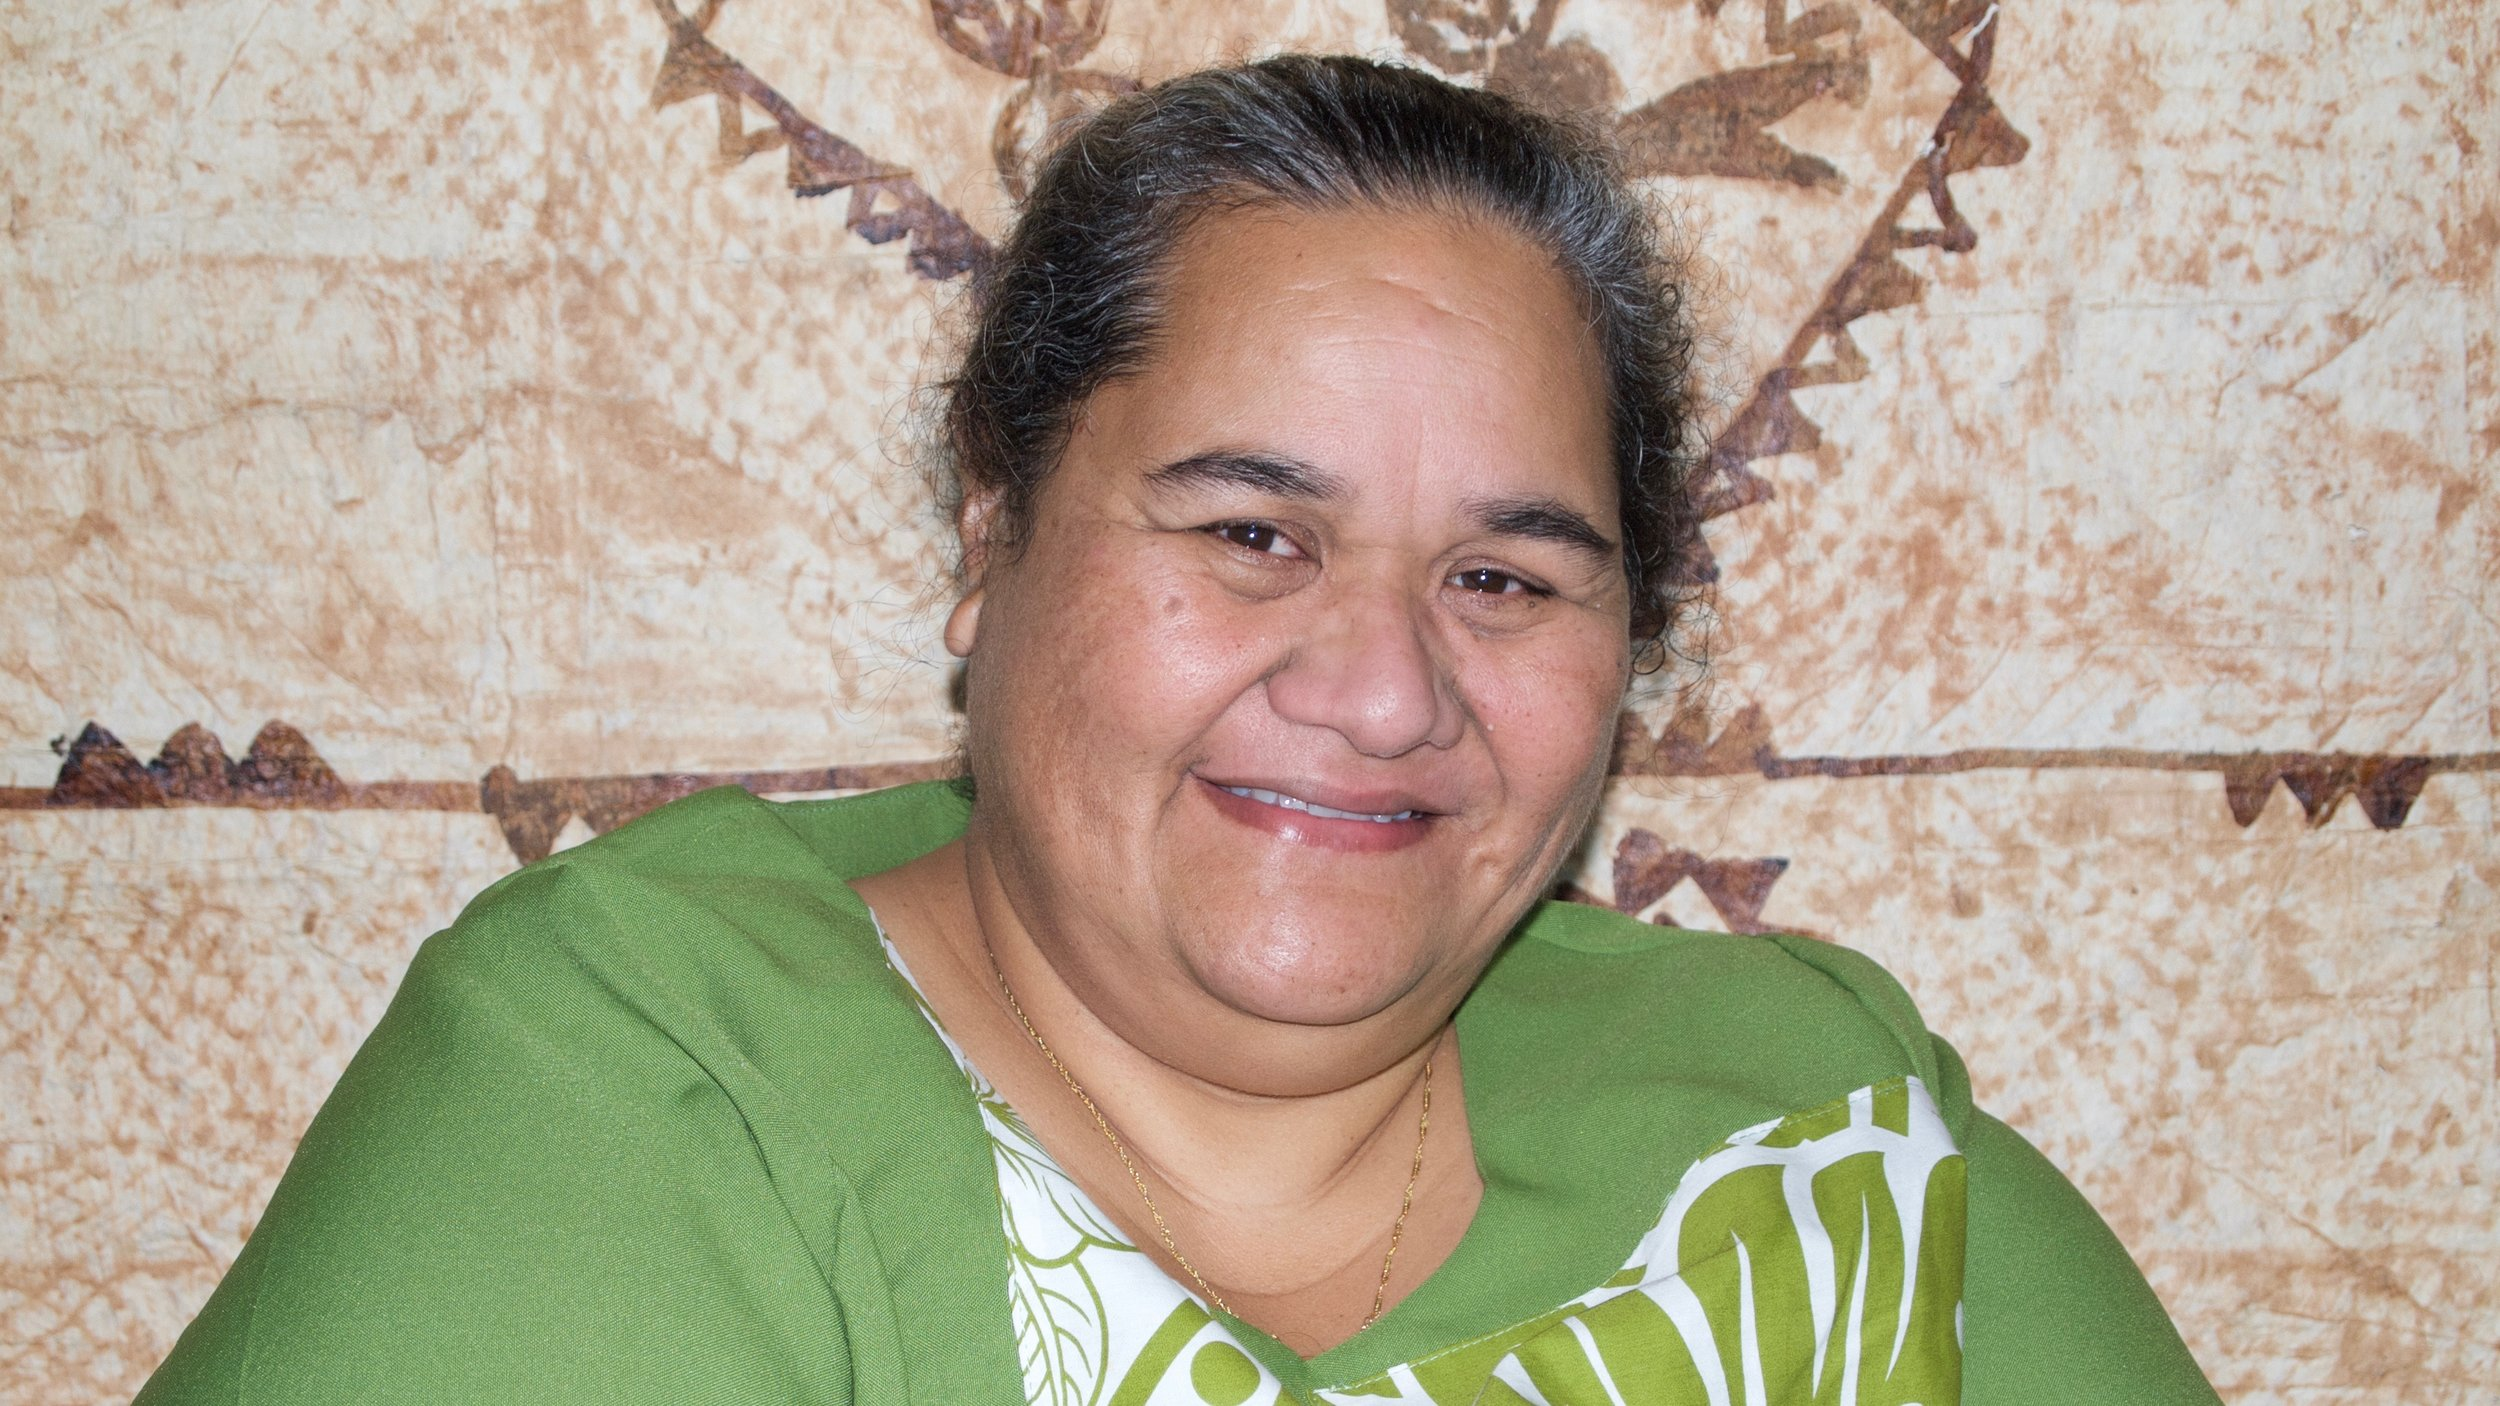 Roine Lealaiauloto - Chair   Roine Lealaiauloto is Chief Executive Officer of Penina Health Trust, an organisation dedicated to helping people who have faced difficulties and/or discrimination because of mental illness.  A South Auckland resident for most of her life,  Roine started her career in the Child Protection Unit of CYF in Otara.  She then joined the Ministry of Health, working with health providers to better support clients with mental health concerns.  Roine is currently completing her MBA with Southern Cross University through Manukau Institute of Technology.